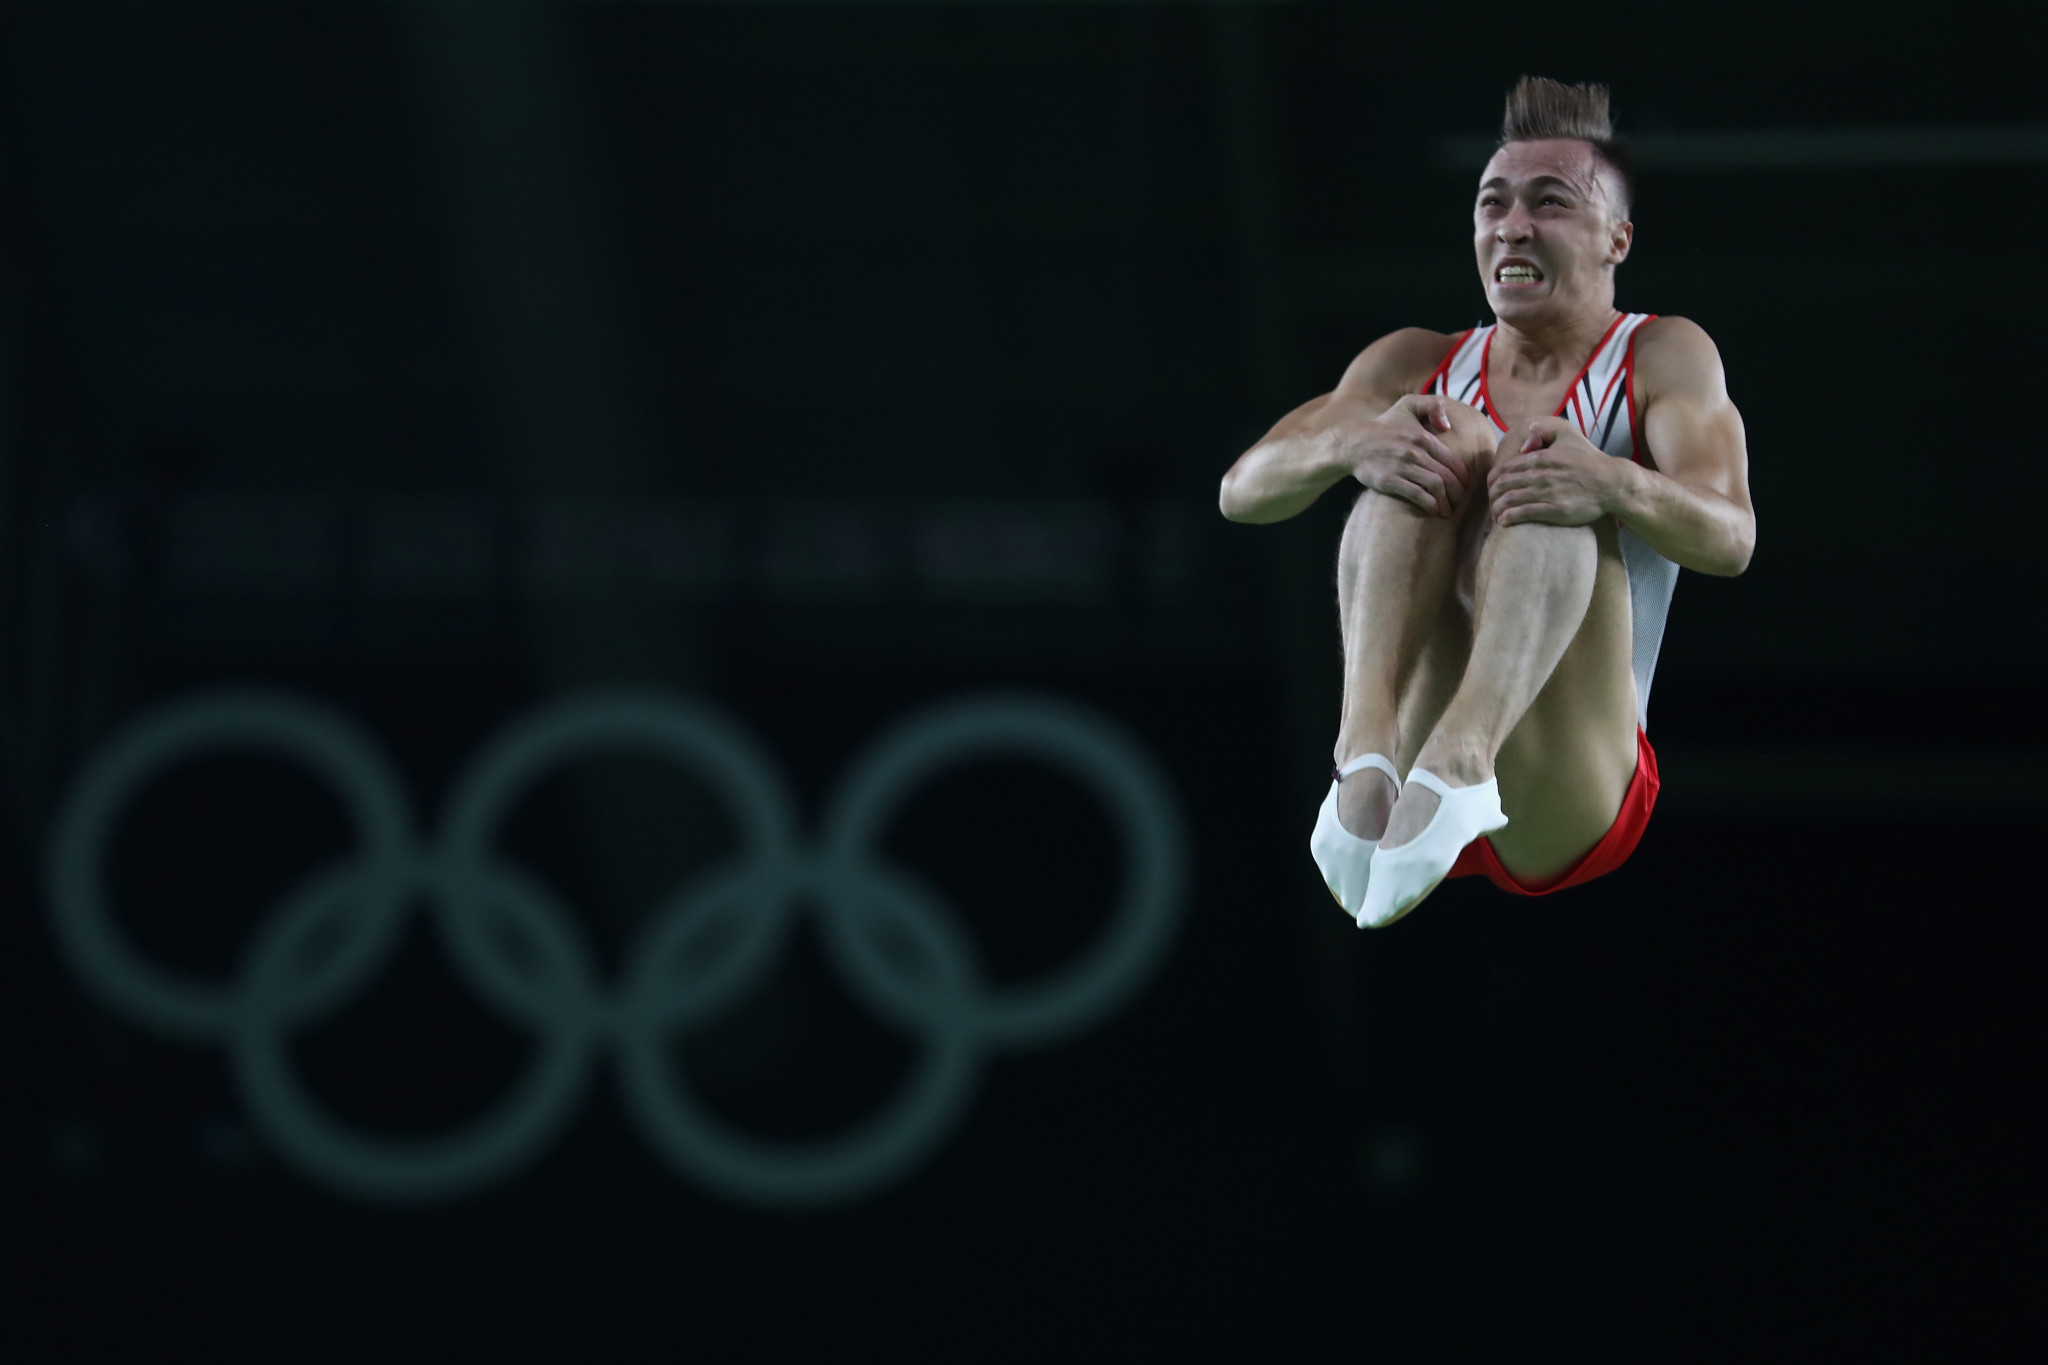 Rio 2016 gold medallist to battle for men's title at Trampoline Gymnastics World Championships